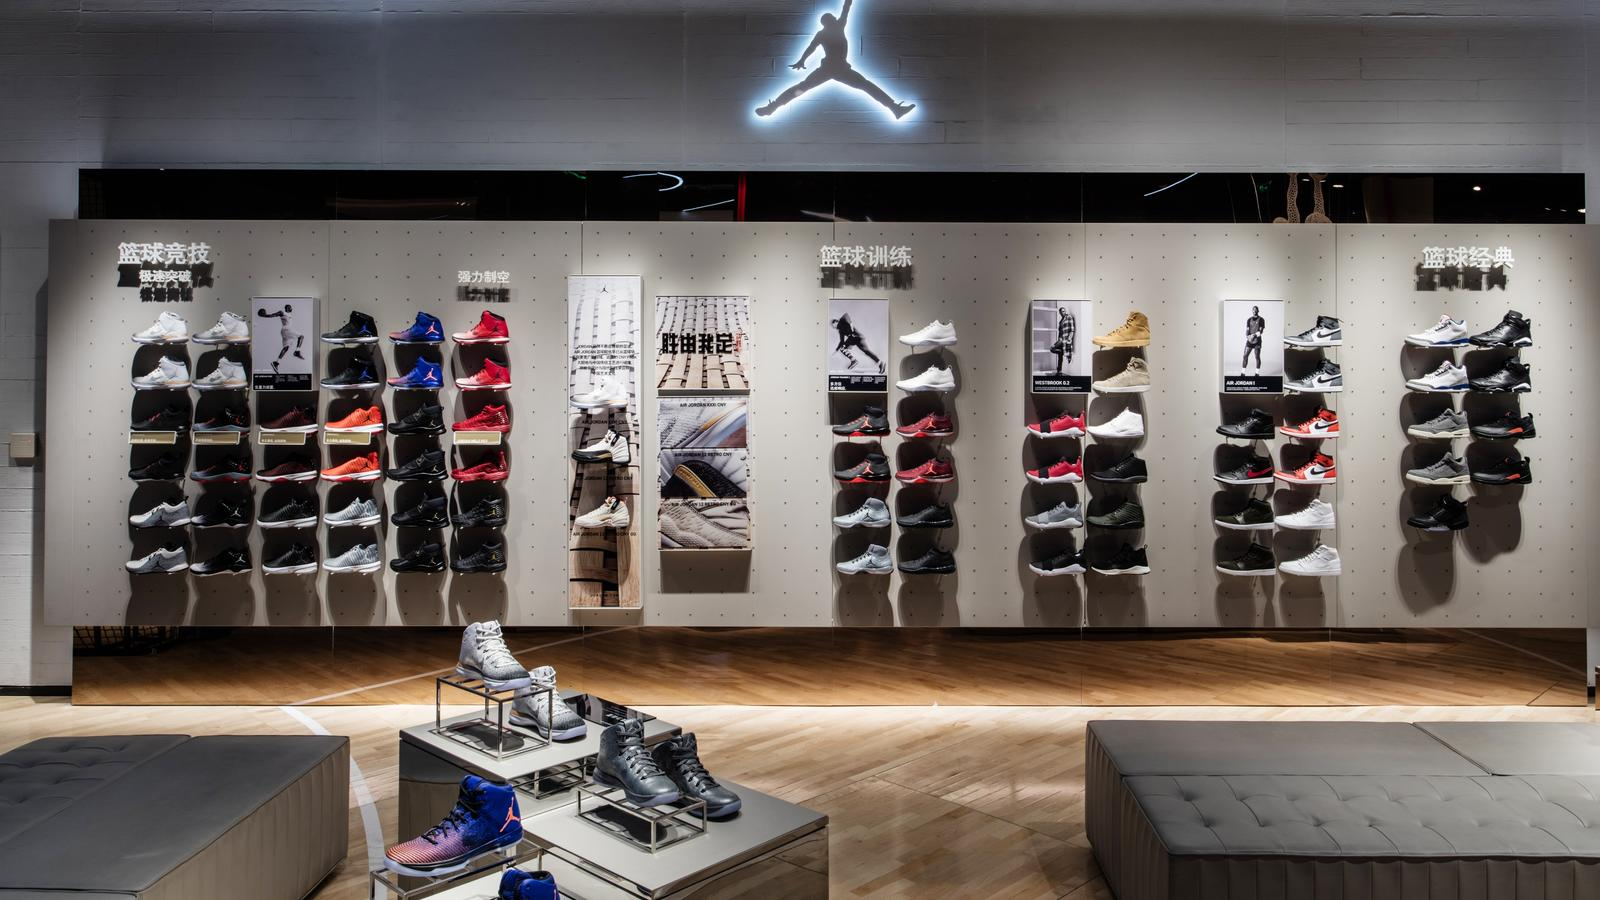 nouveaux styles 7e813 a93c8 Nike Warns Mediocre Retailers It Will Cut Back On Offerings ...